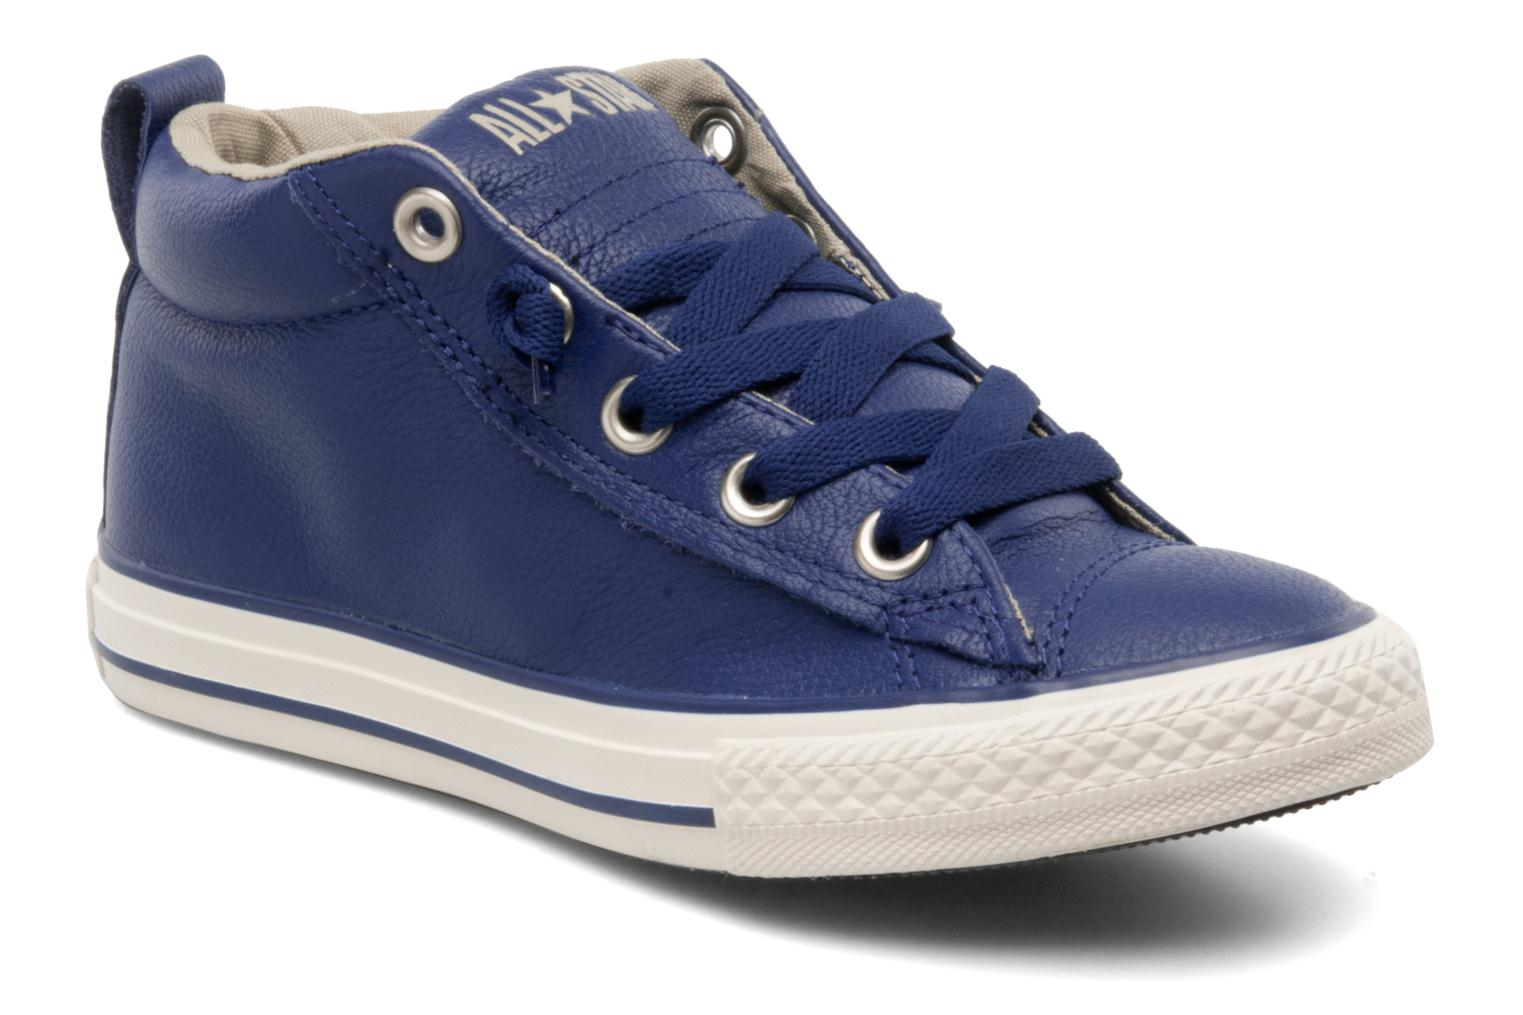 1c2d9ce5896 Converse Chuck taylor all star street leather mid k (Blue ...